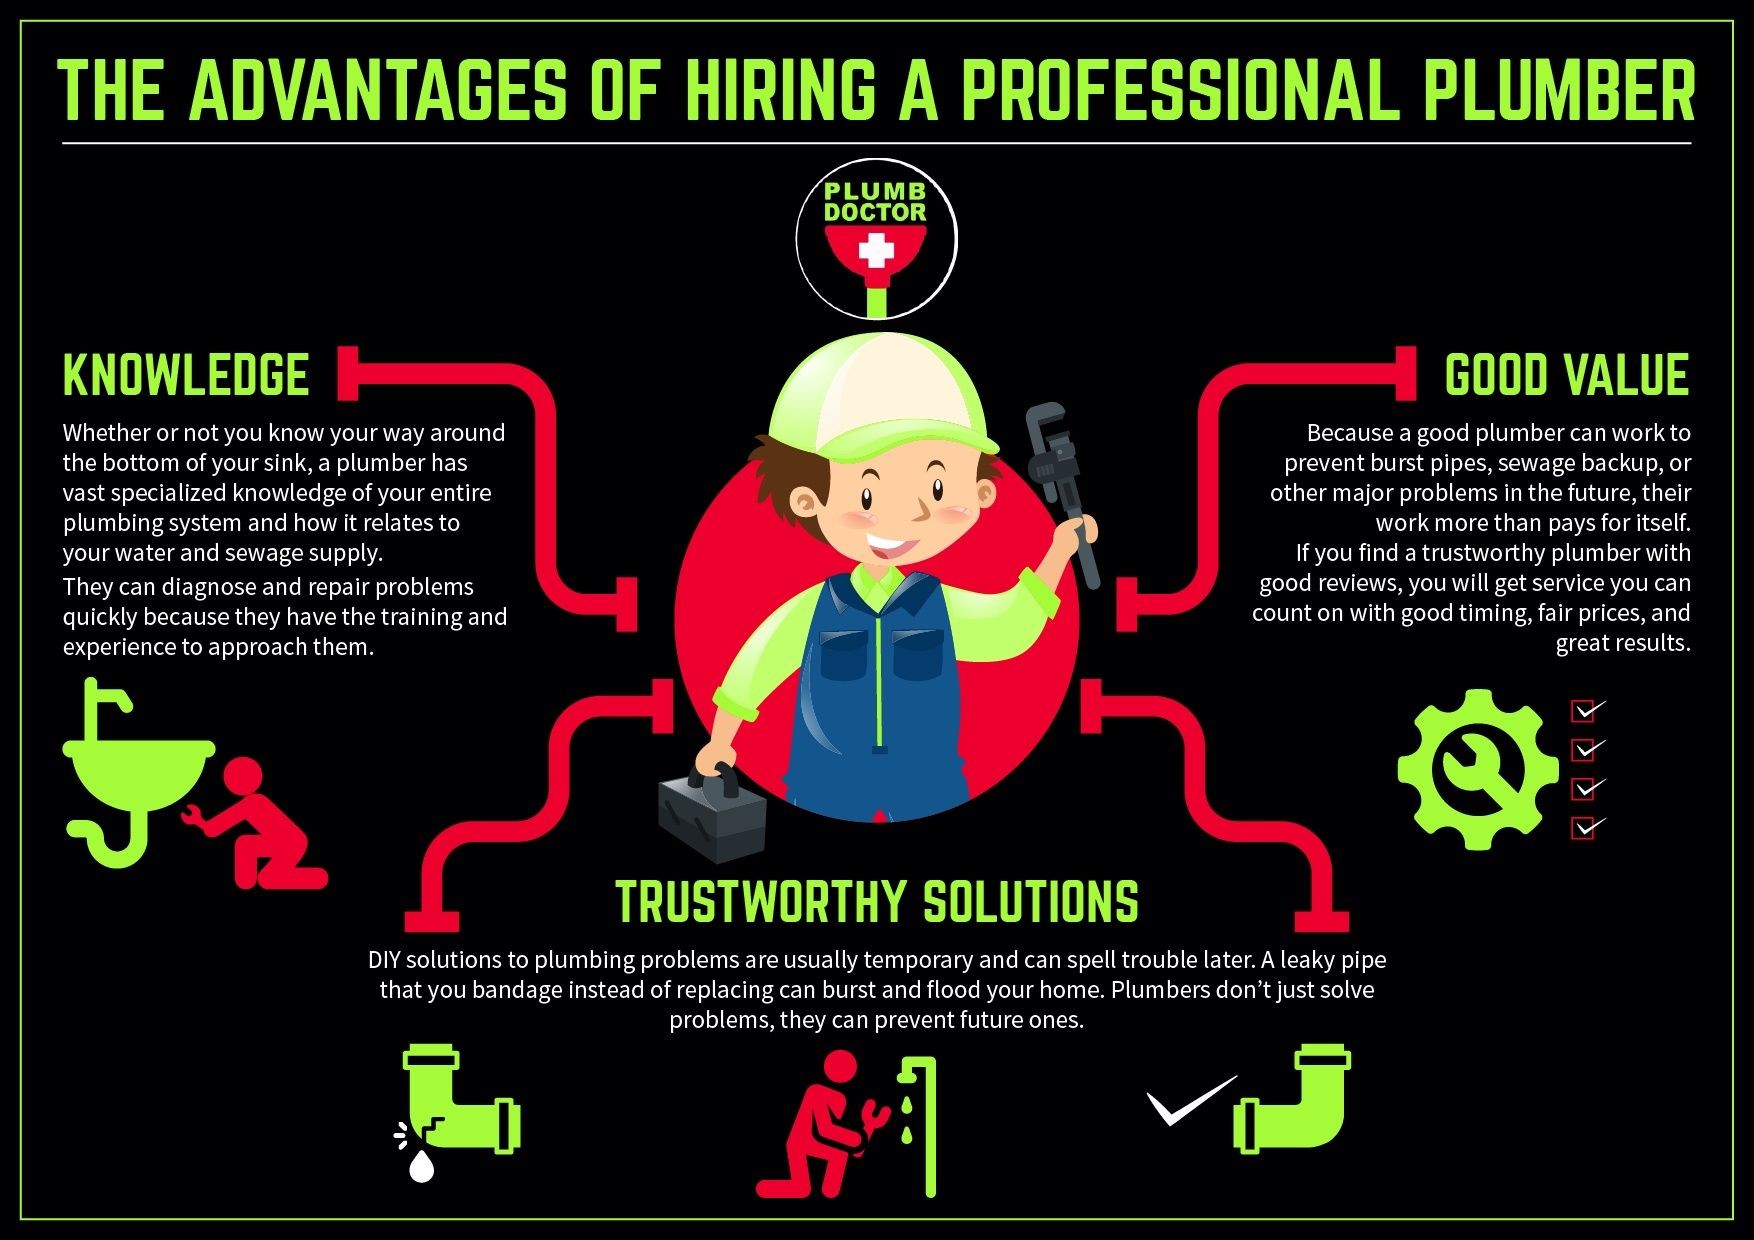 Next Time You Have A Plumbing Crisis, Should You DIY The Job Or Hire A  Professional Plumber To Tackle It? There Are Many Advantages To Hiring A  Pro That ...